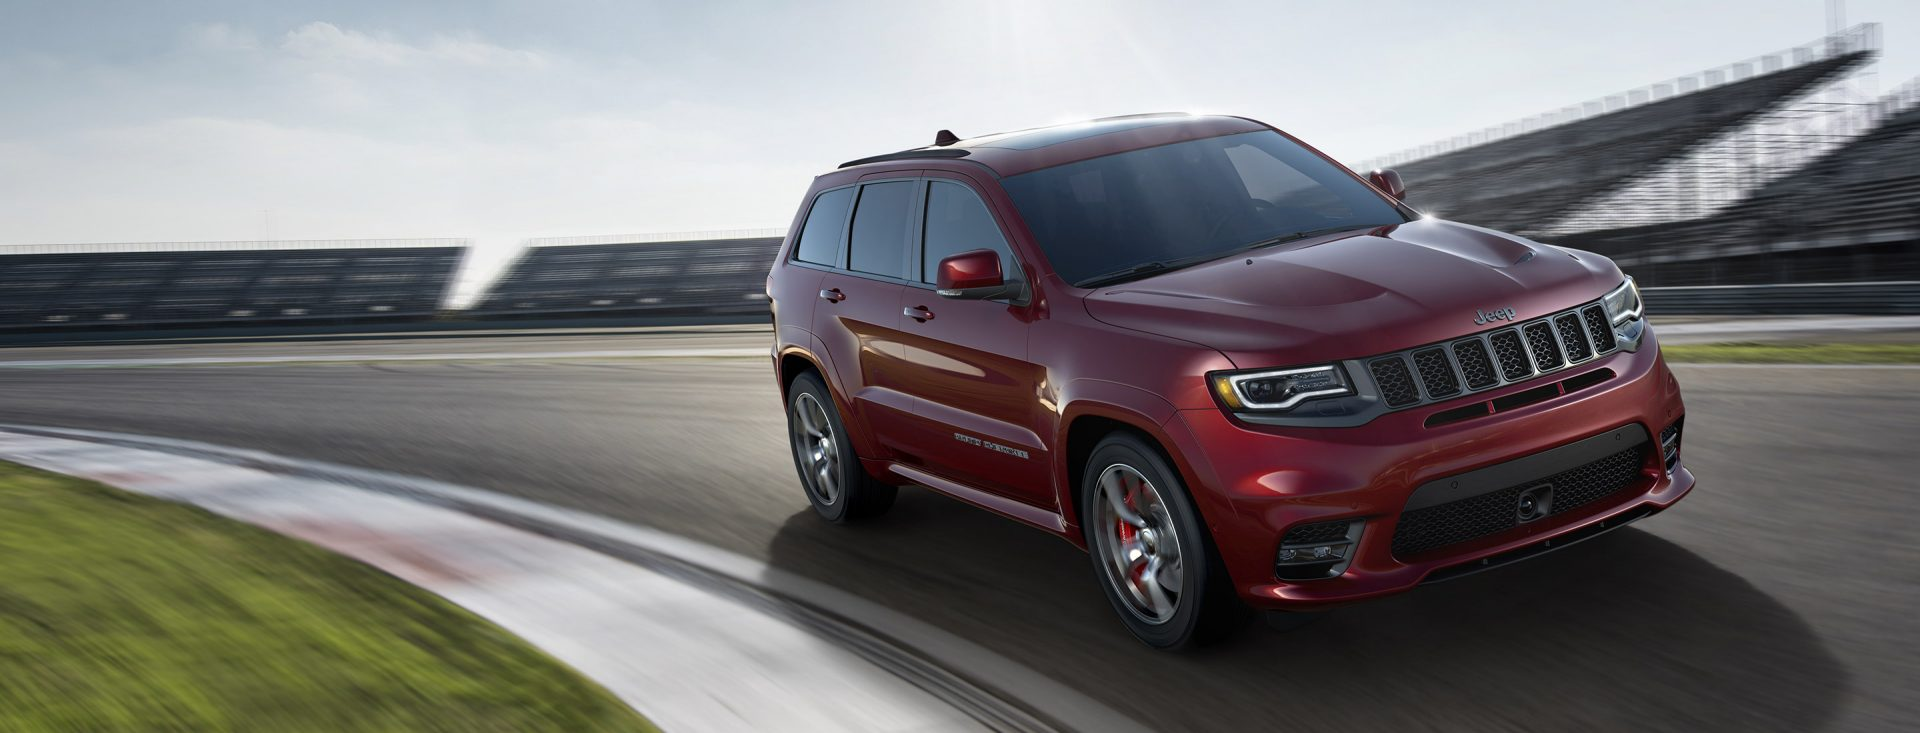 2017 Jeep Grand Cherokee SRT VLP Hero